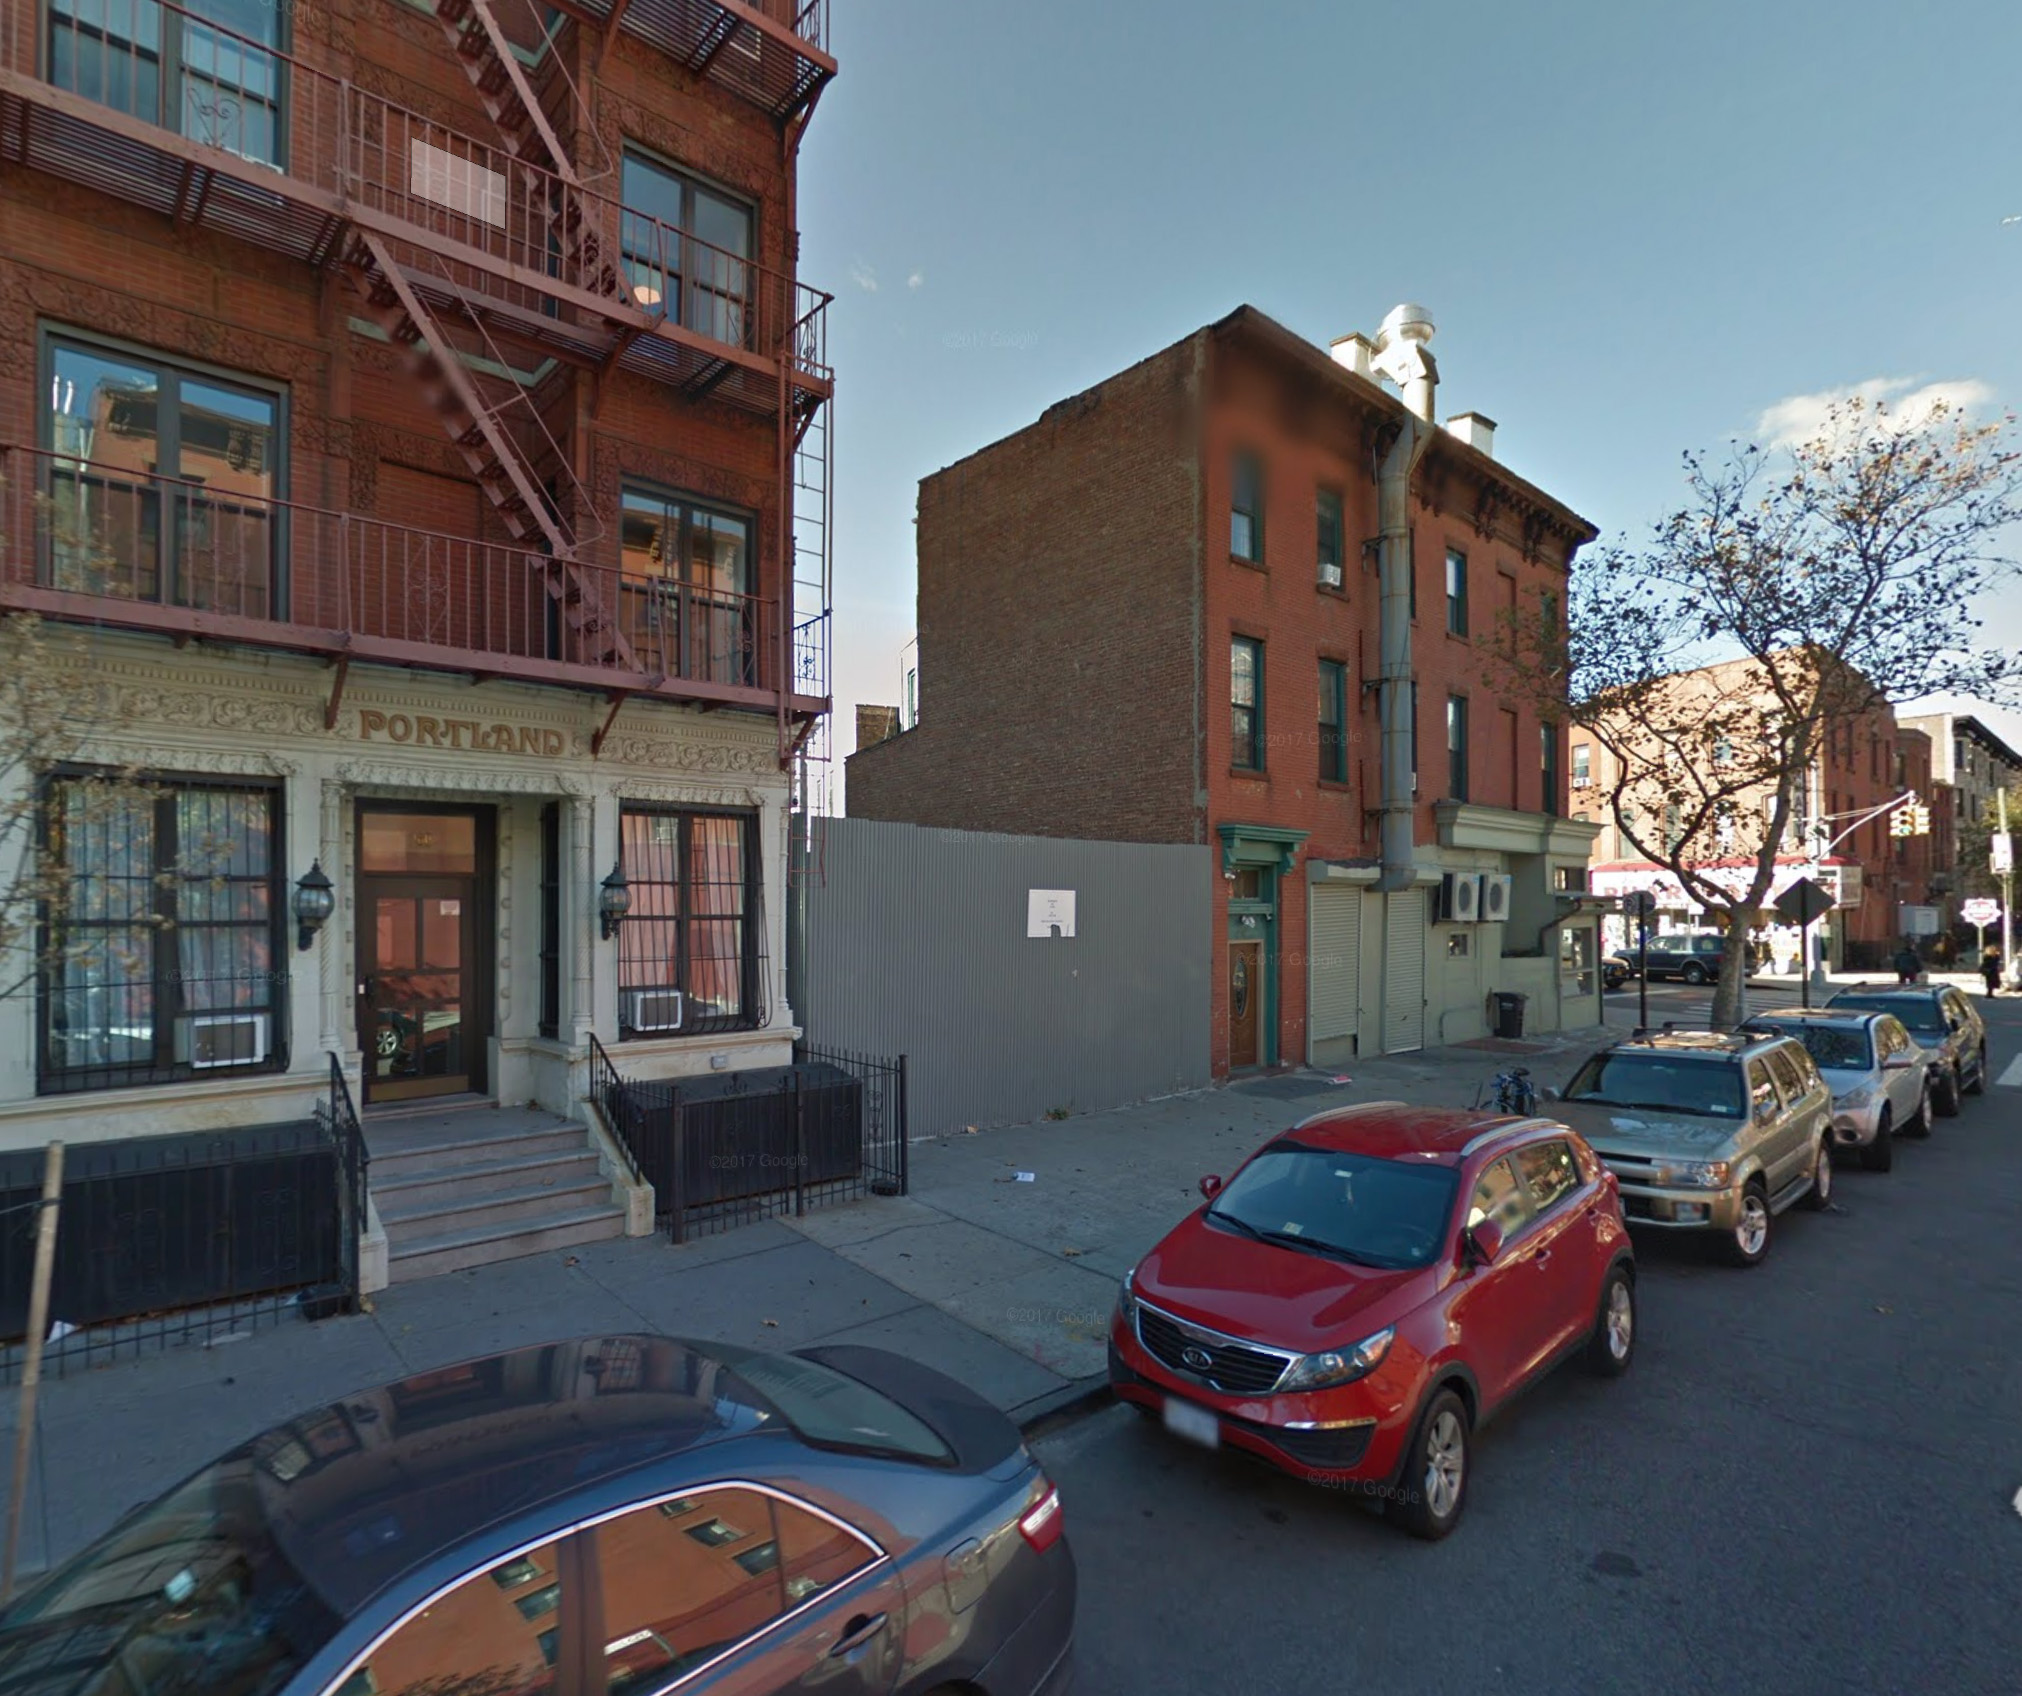 258 Saint James Place, via Google Maps